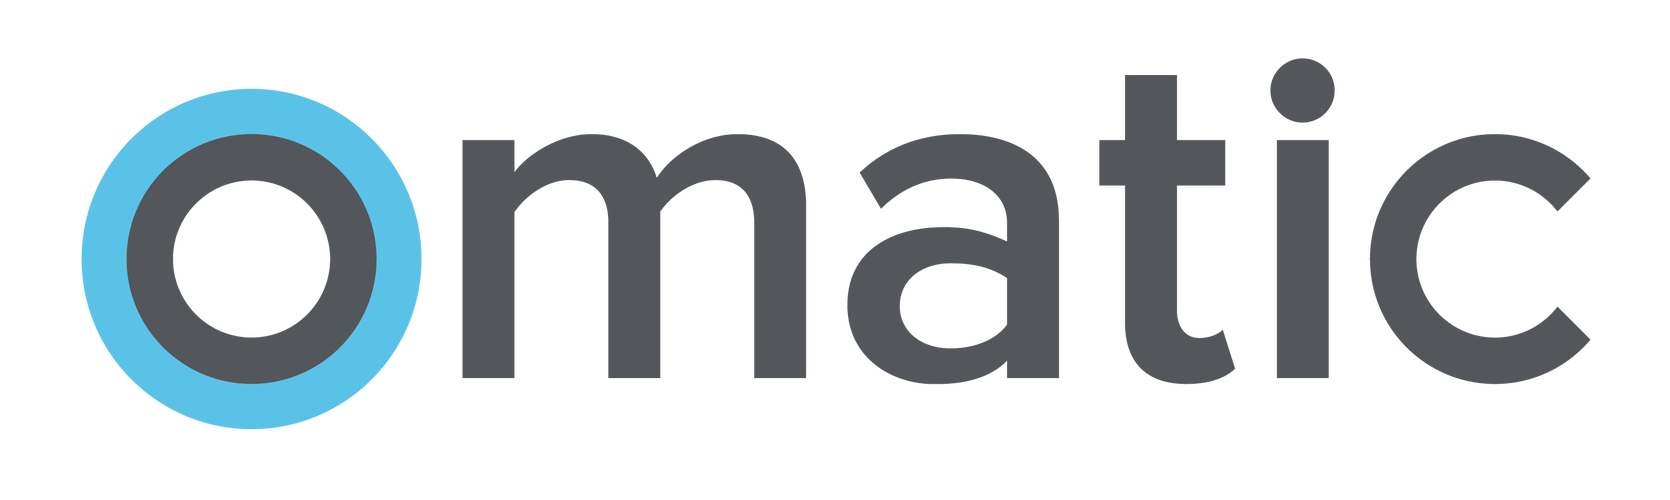 Omatic Software